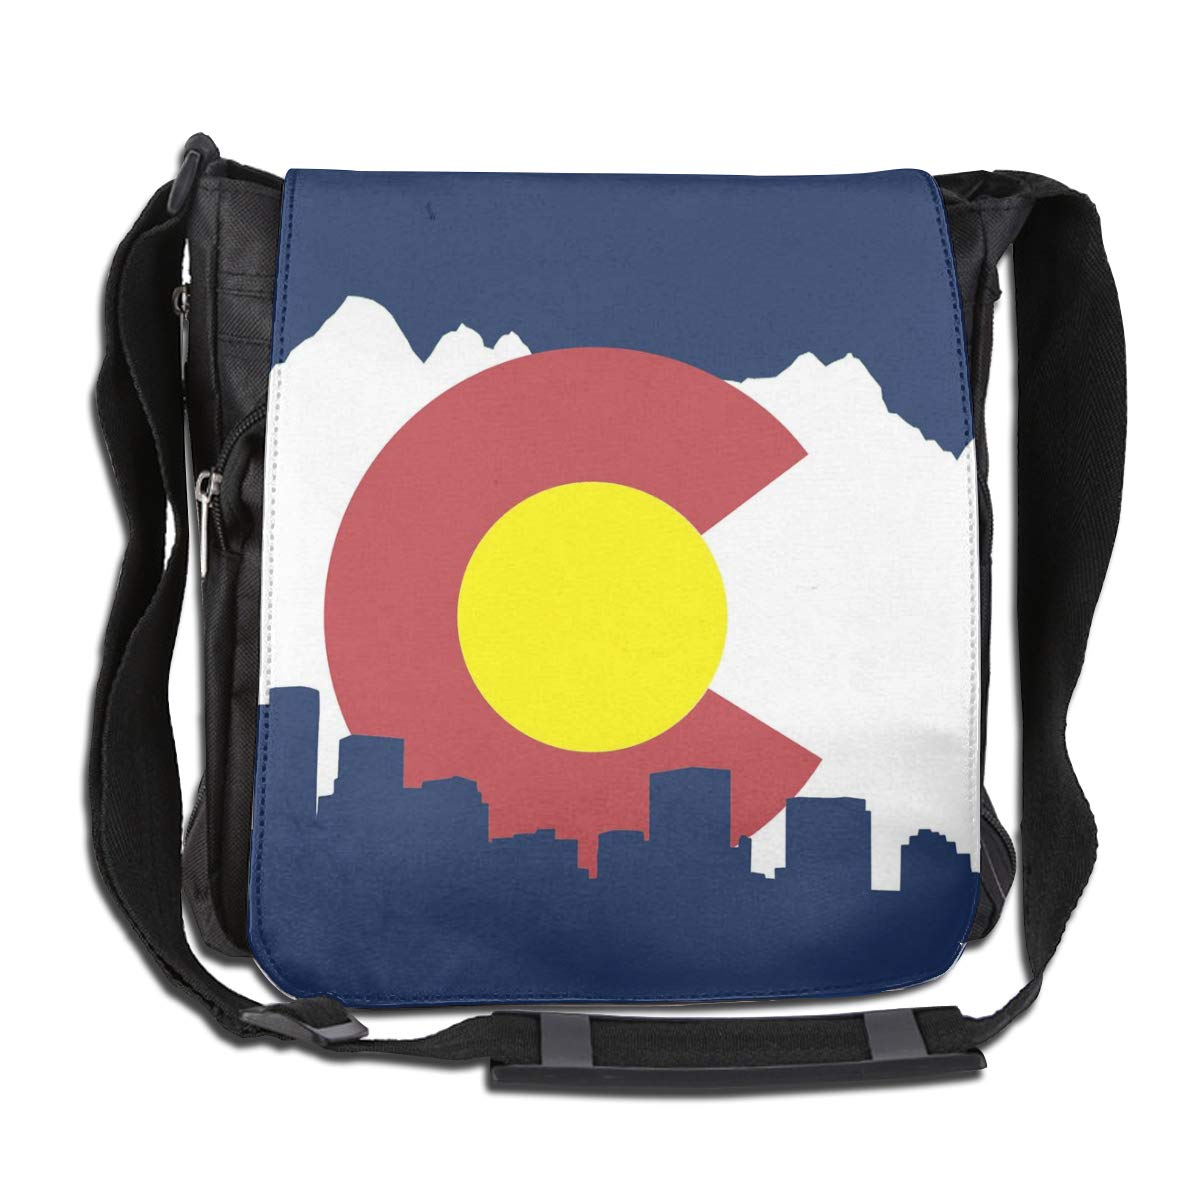 Colorado State Flag Crossbody Shoulder Bag Durable Casual Daily Messenger Bag Satchel School Bag For Women And Men